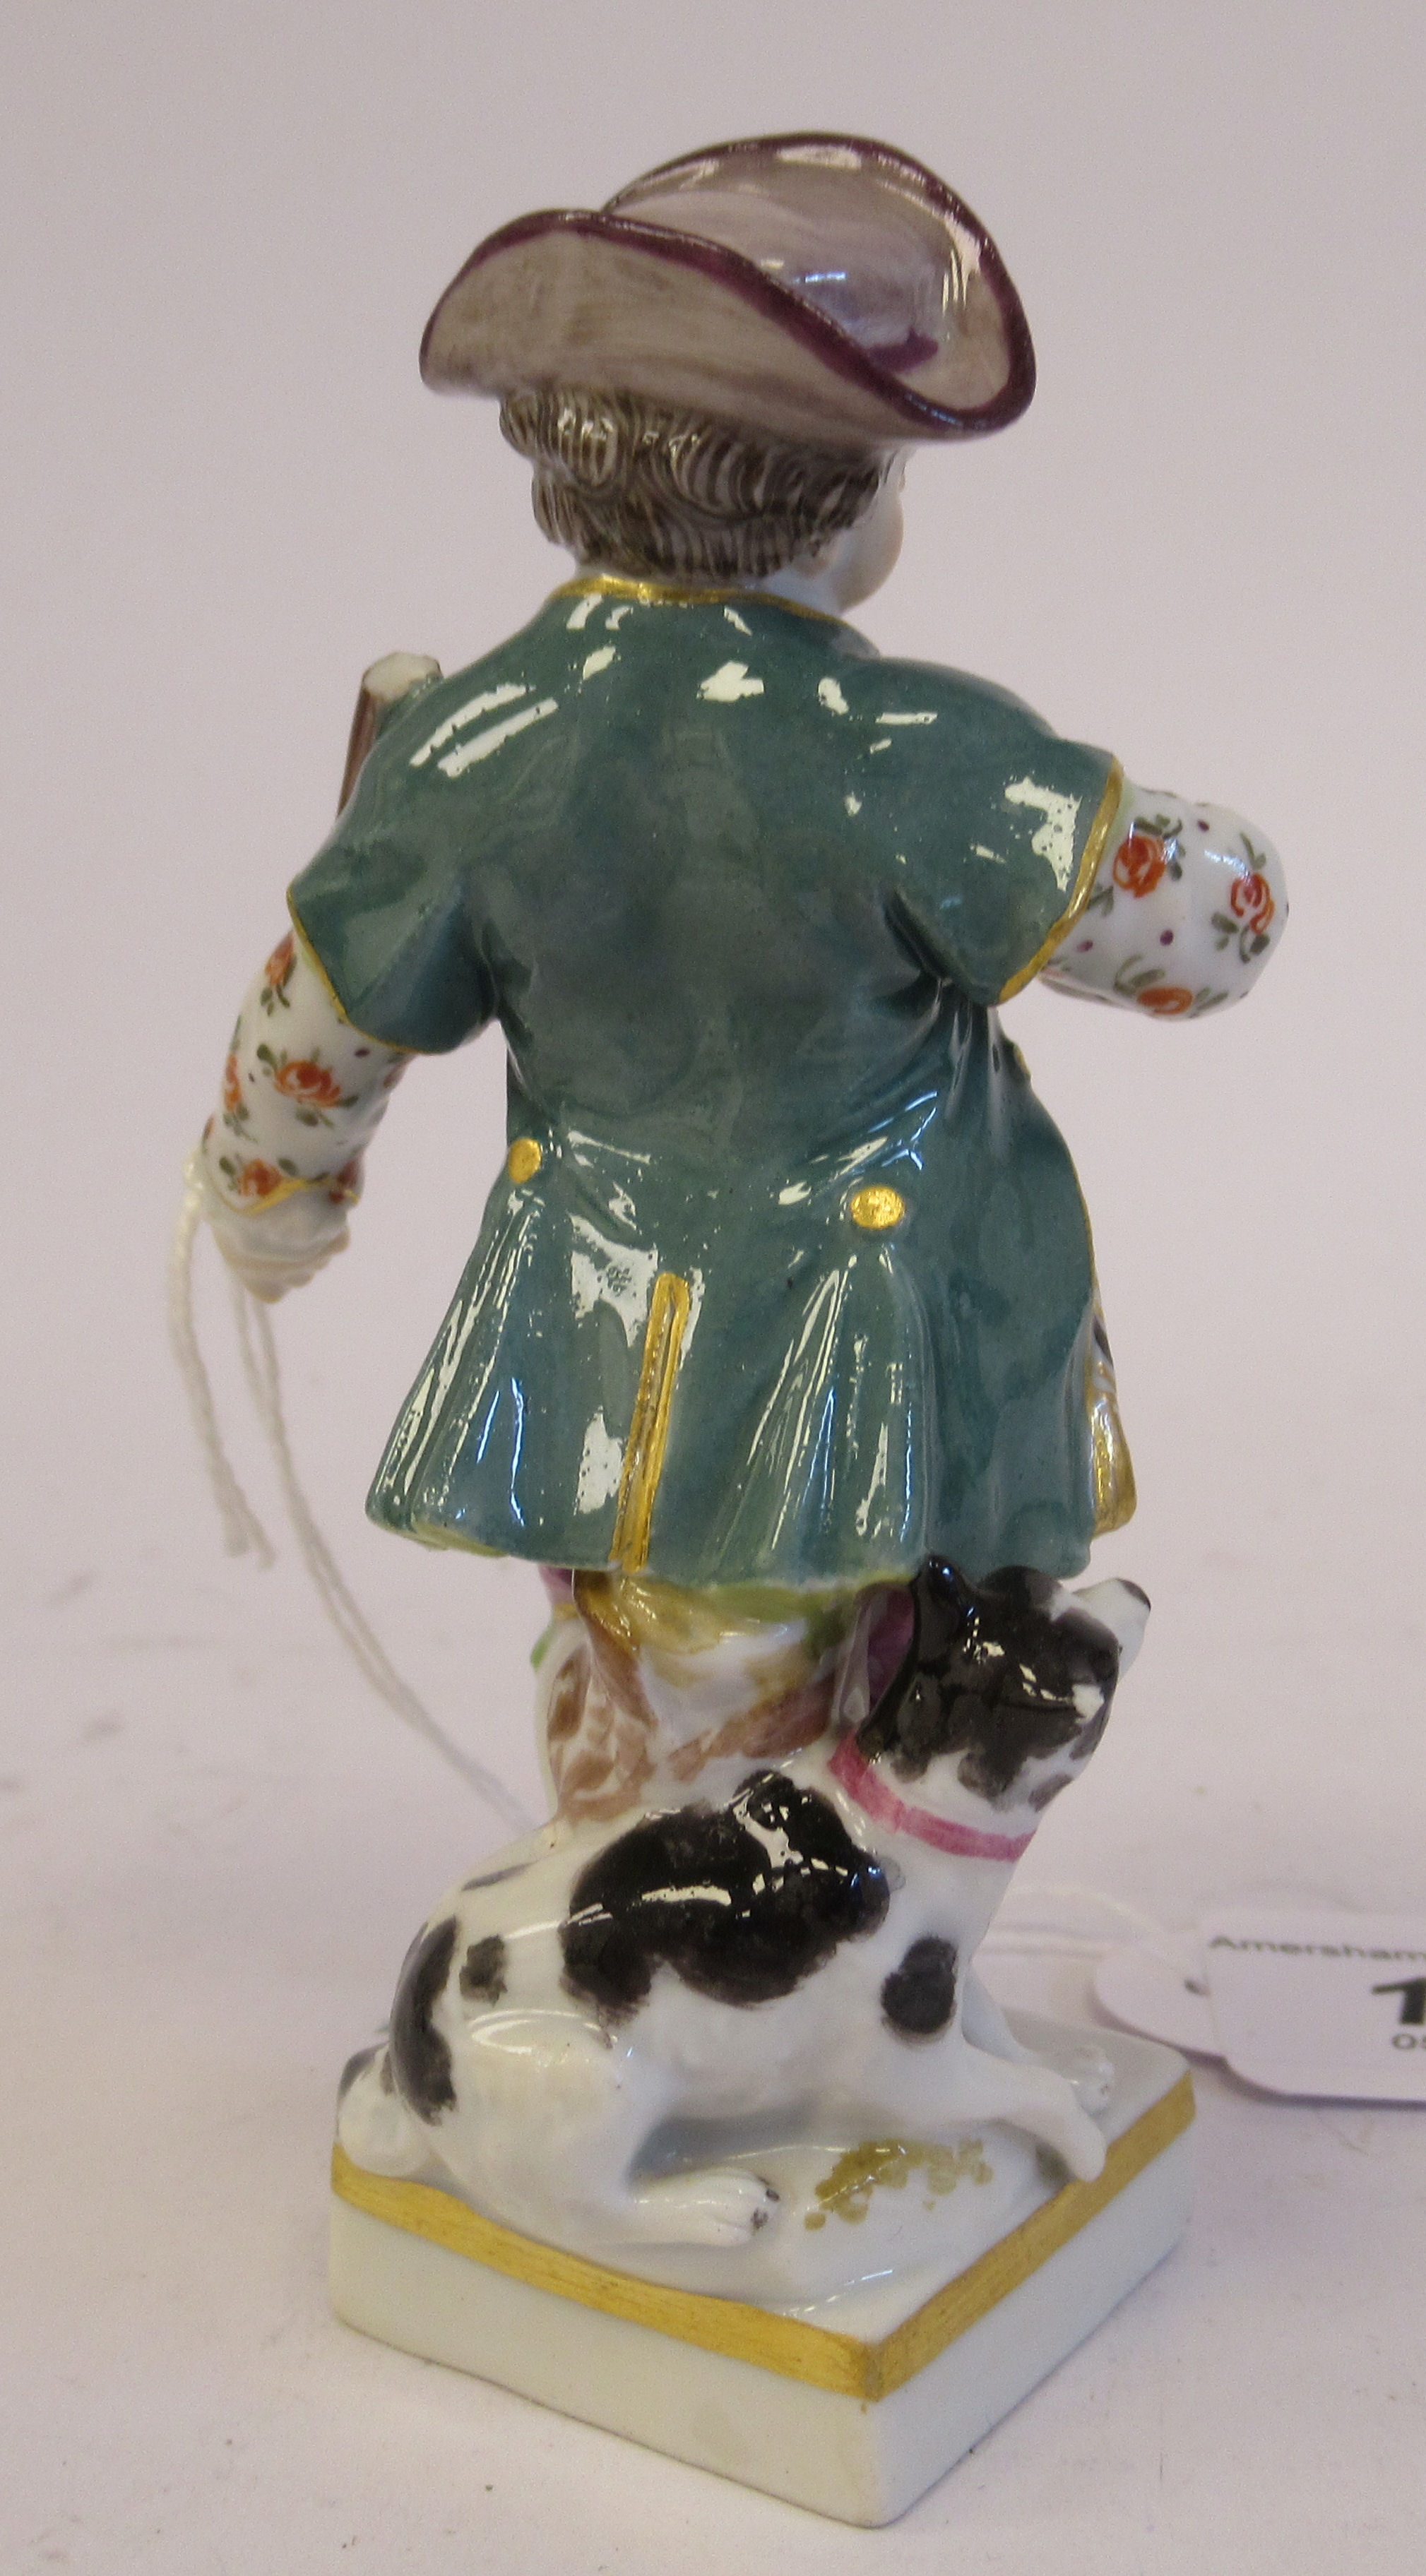 A 19th/20thC Meissen porcelain figure, a boy wearing a frock coat with a dog at his side, on a - Image 2 of 4